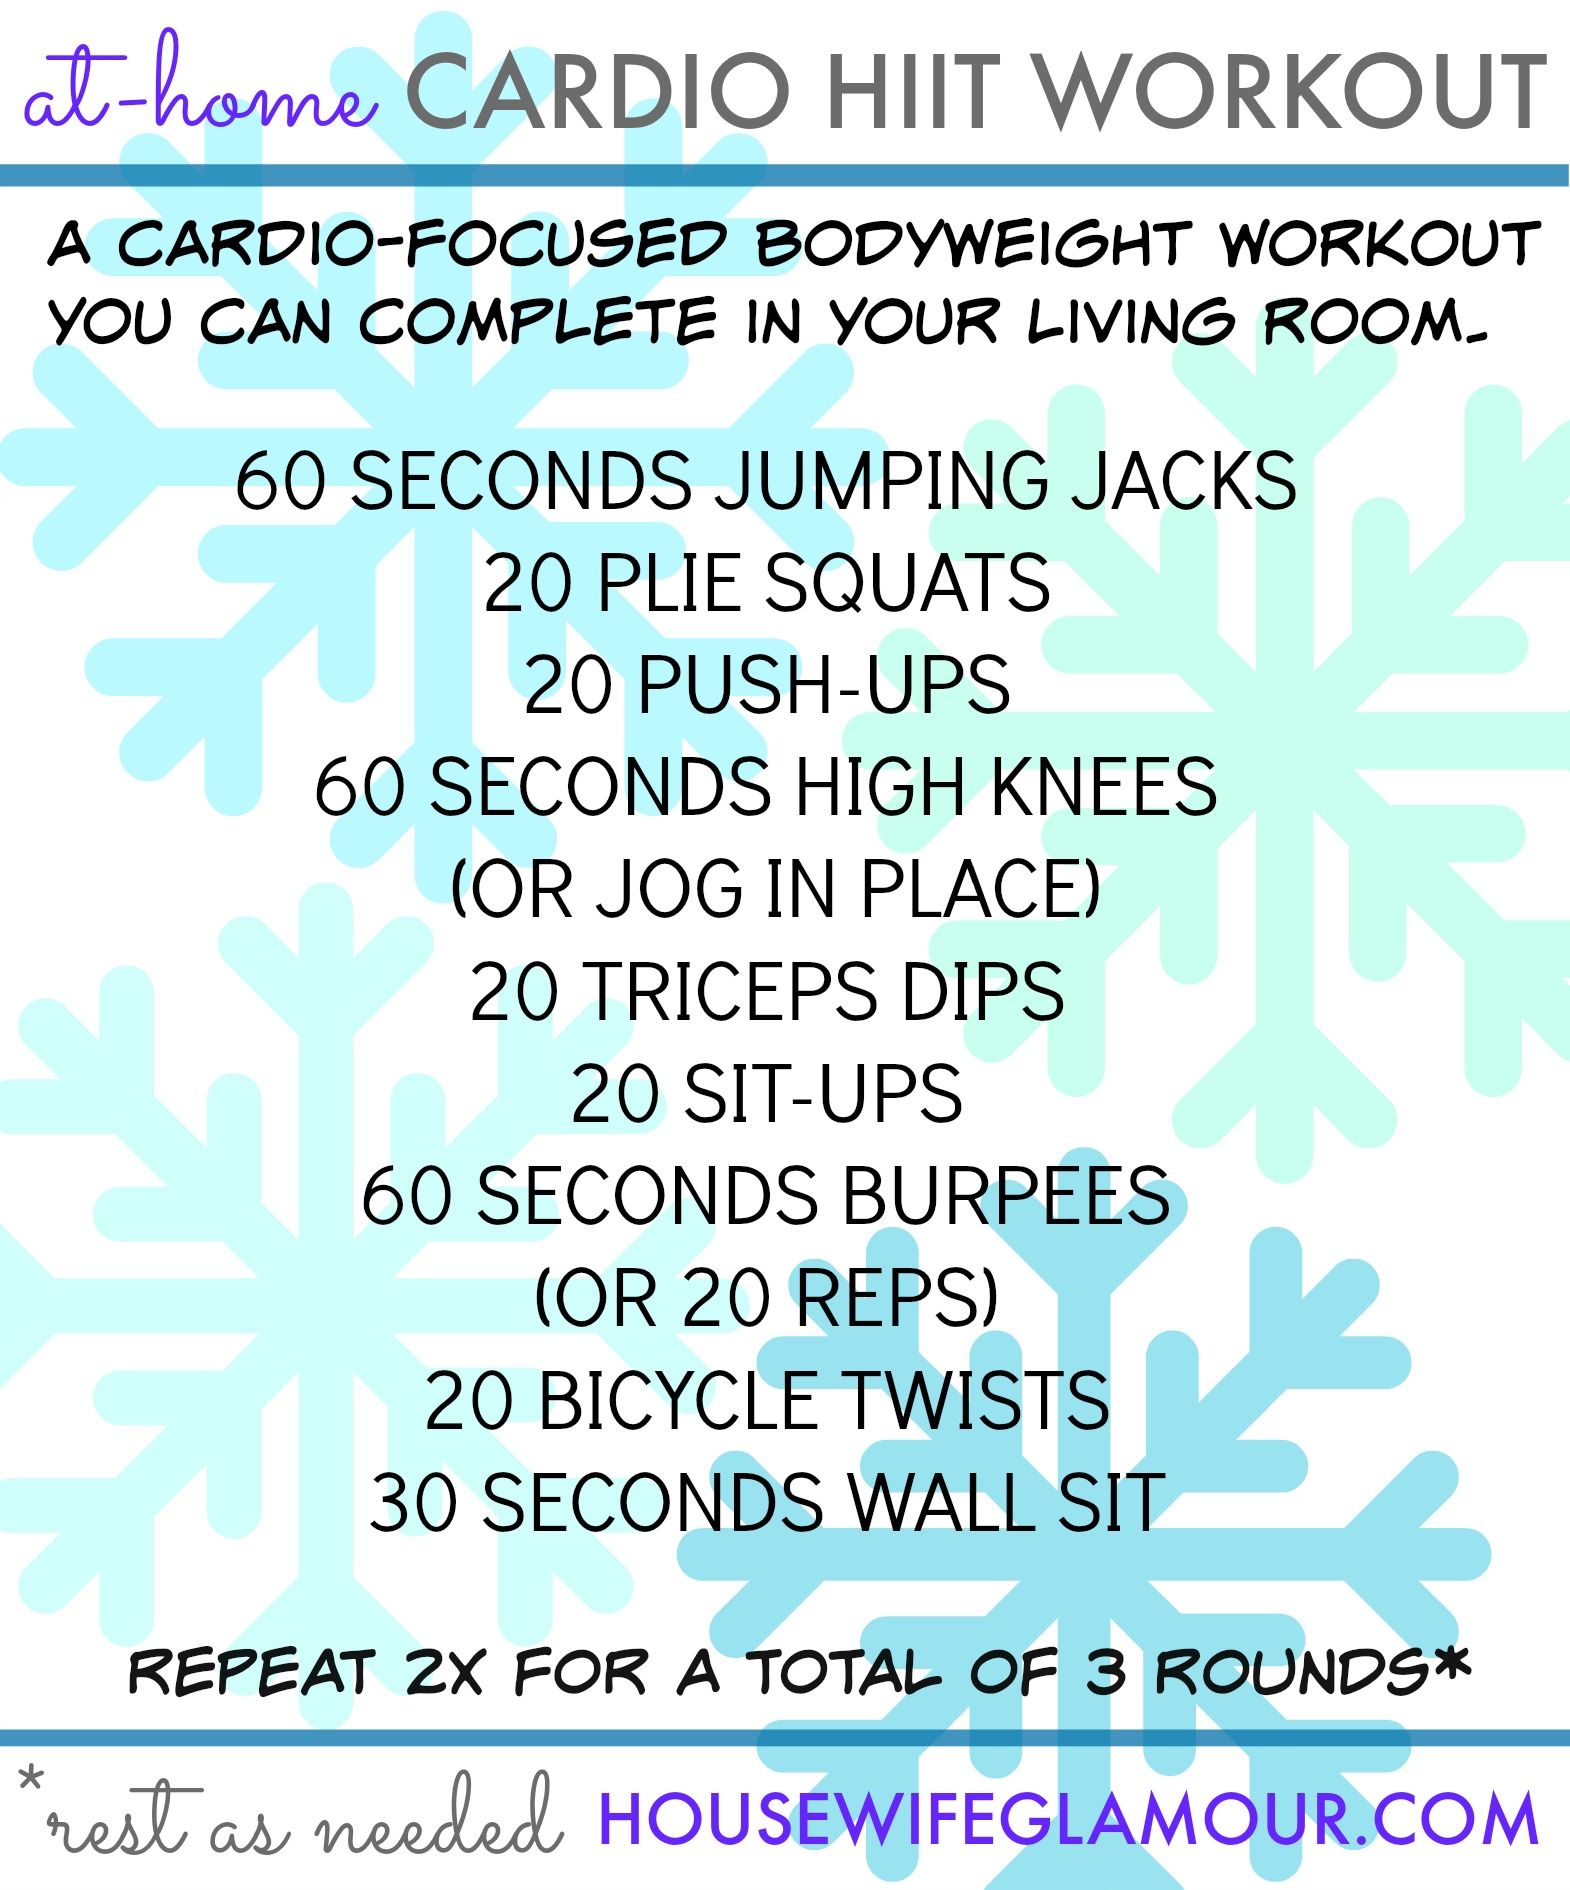 At-Home Cardio HIIT Workout